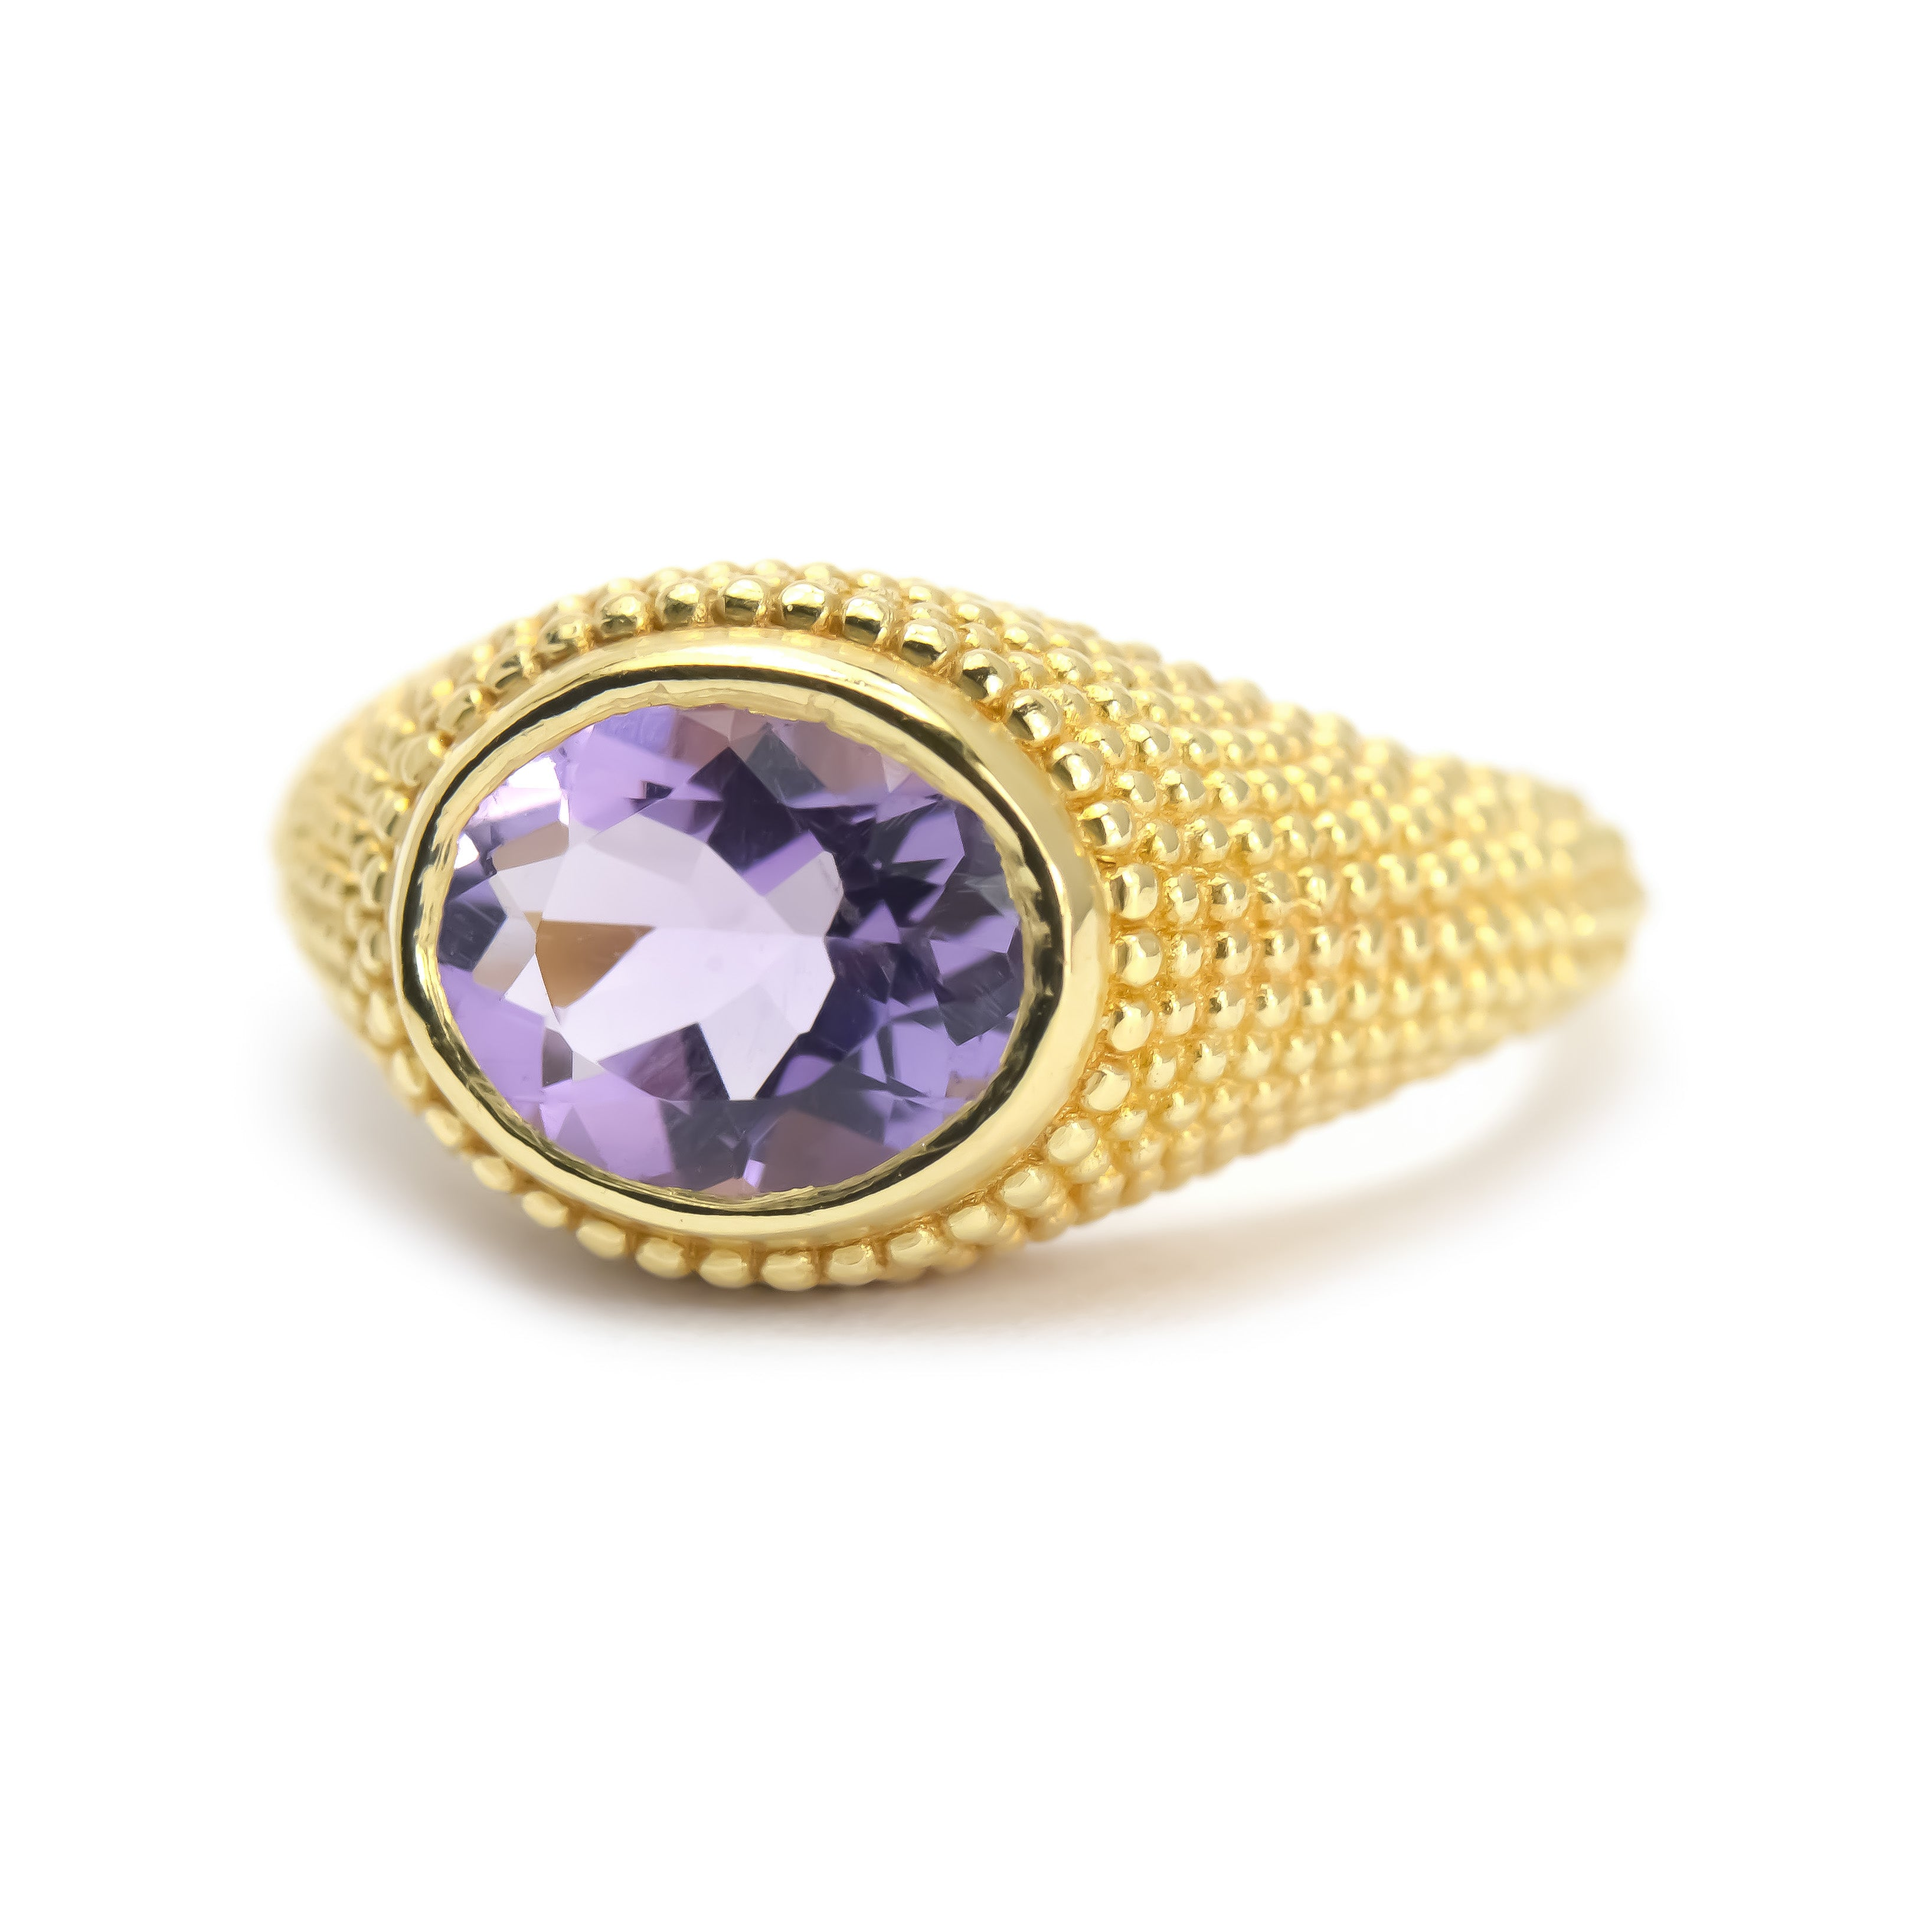 Nubia Oval Amethyst Yellow Gold Ring Size 7US - Manari.eu